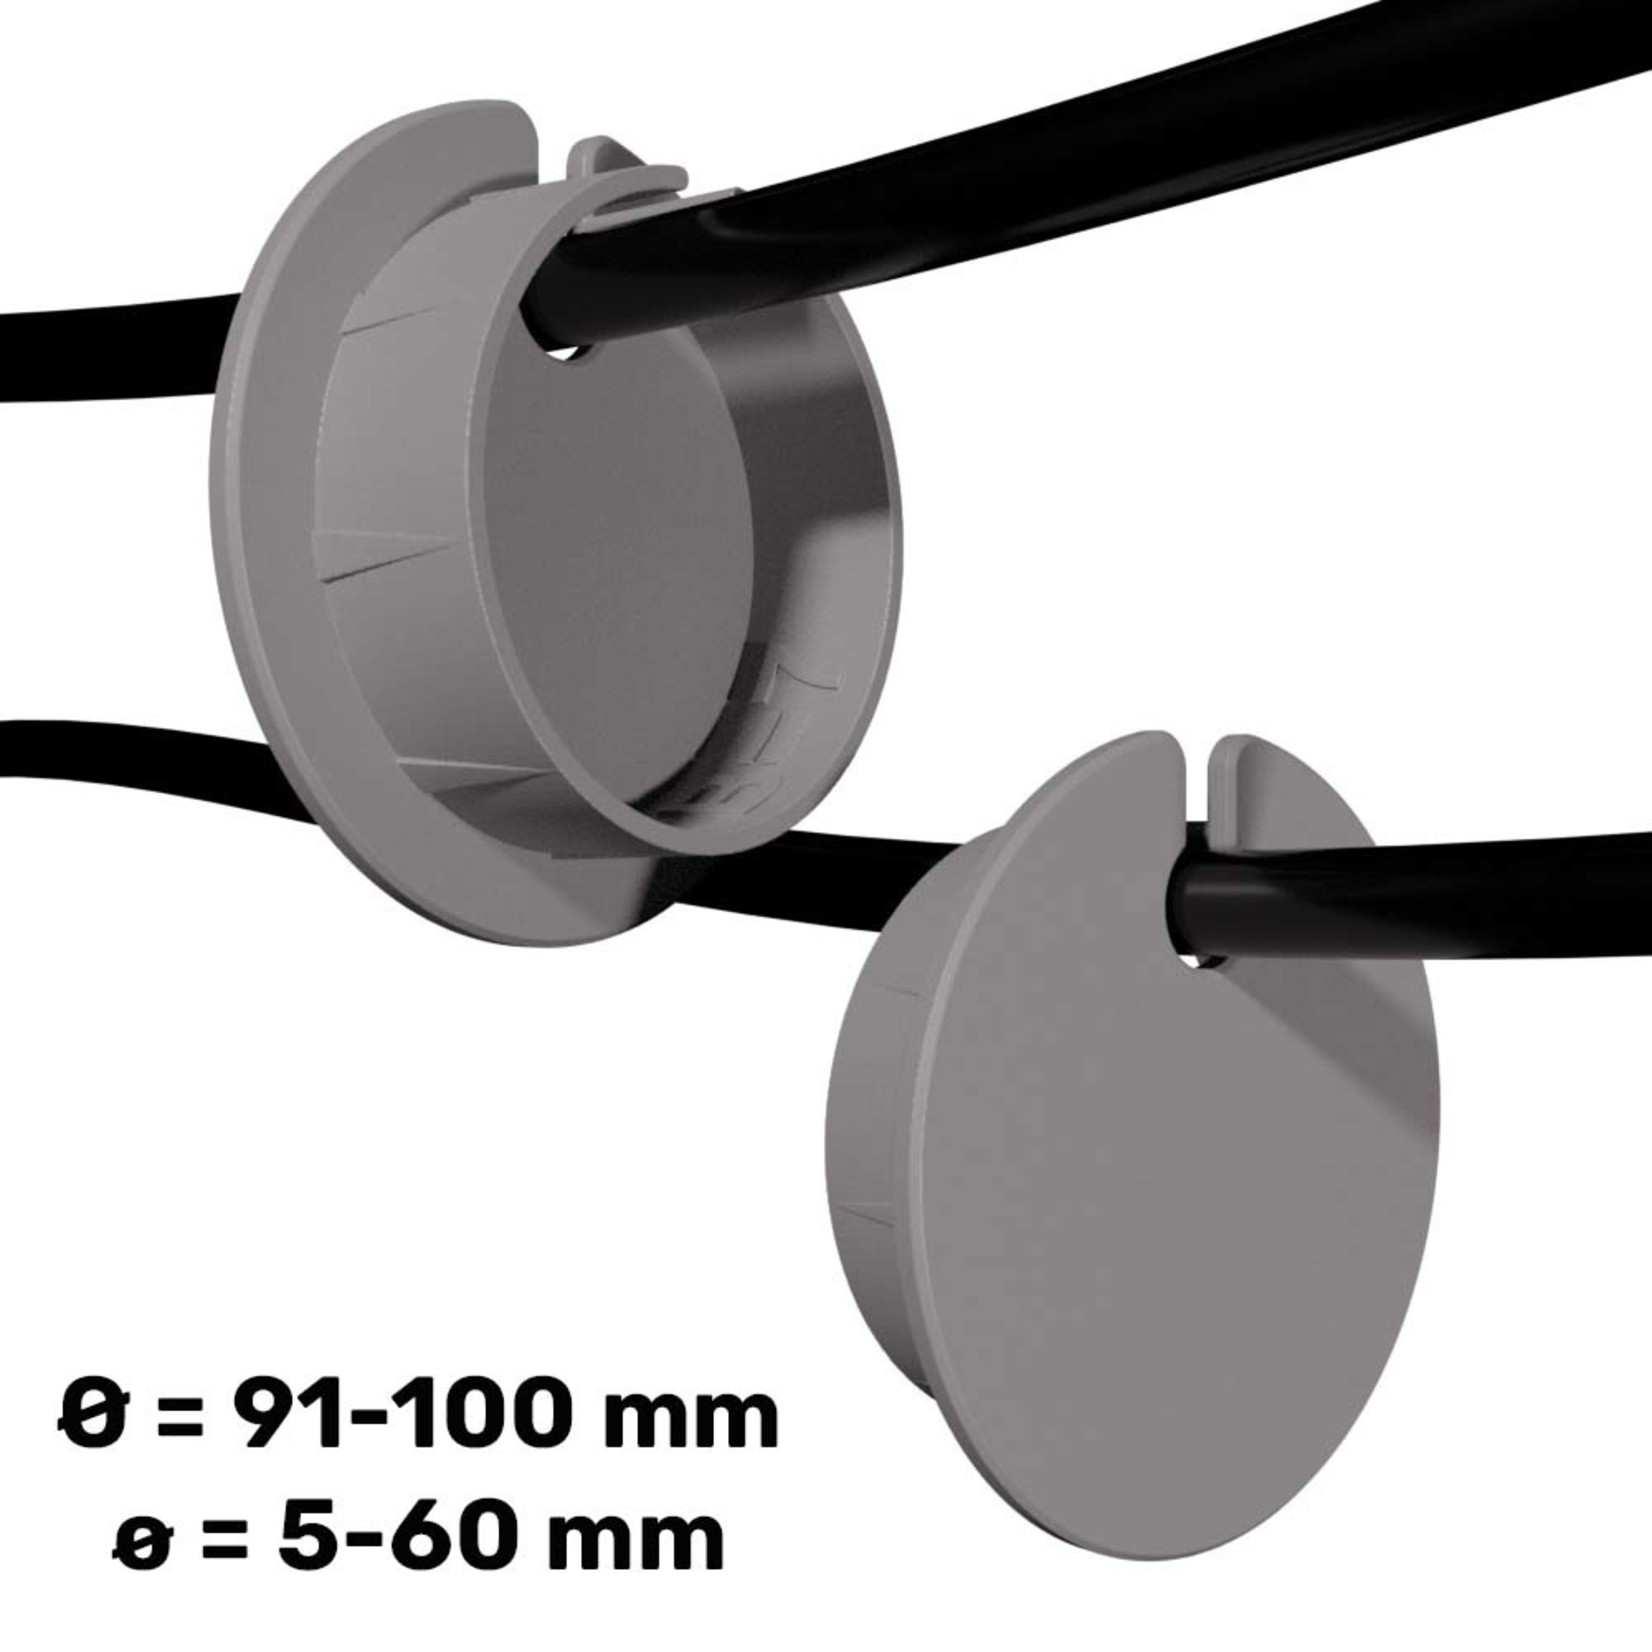 Umake Side cableguide Ø 91-100 mm   Customizable dimensions and colors